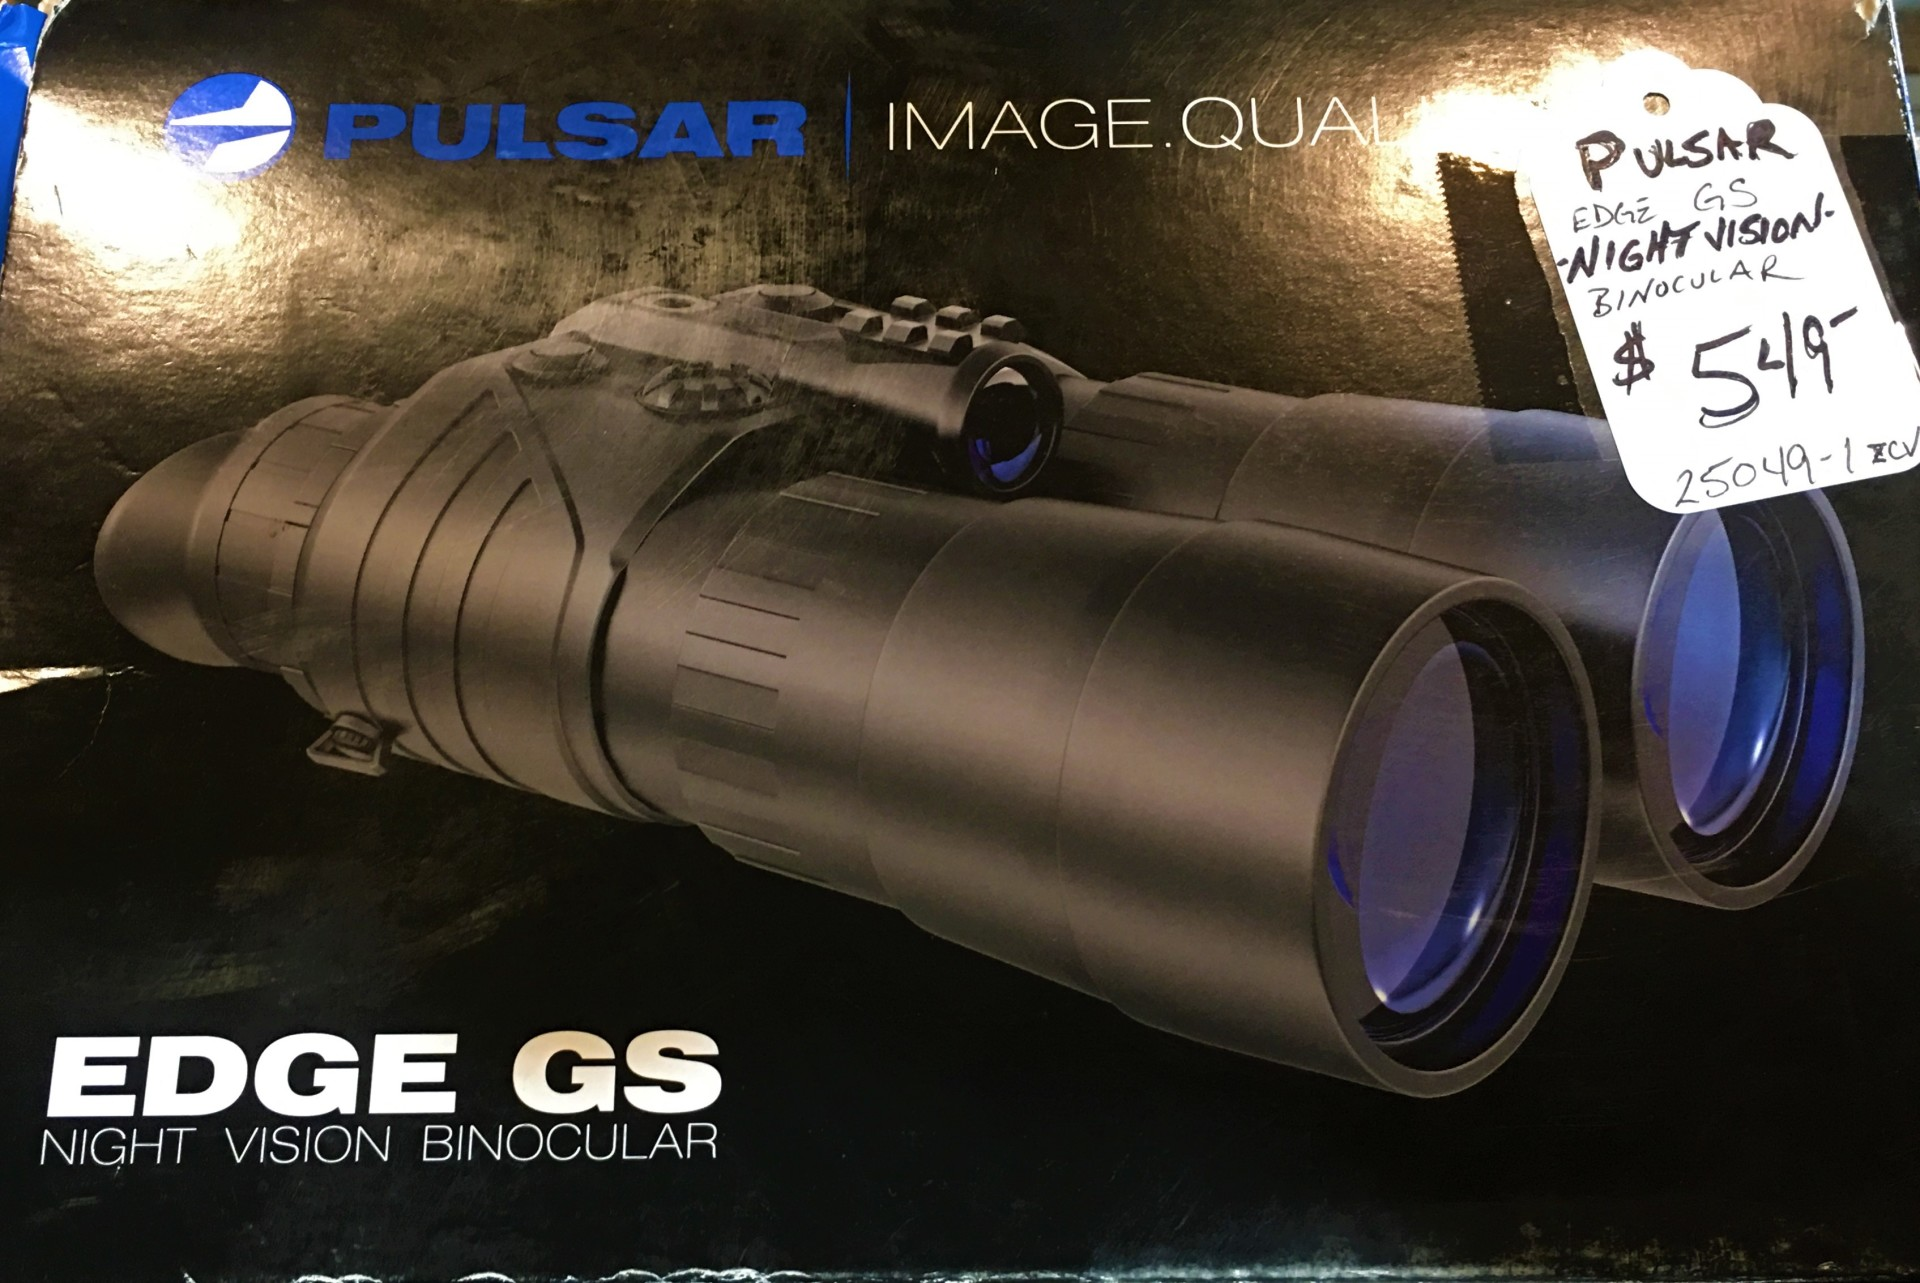 Edge GS Night Vision